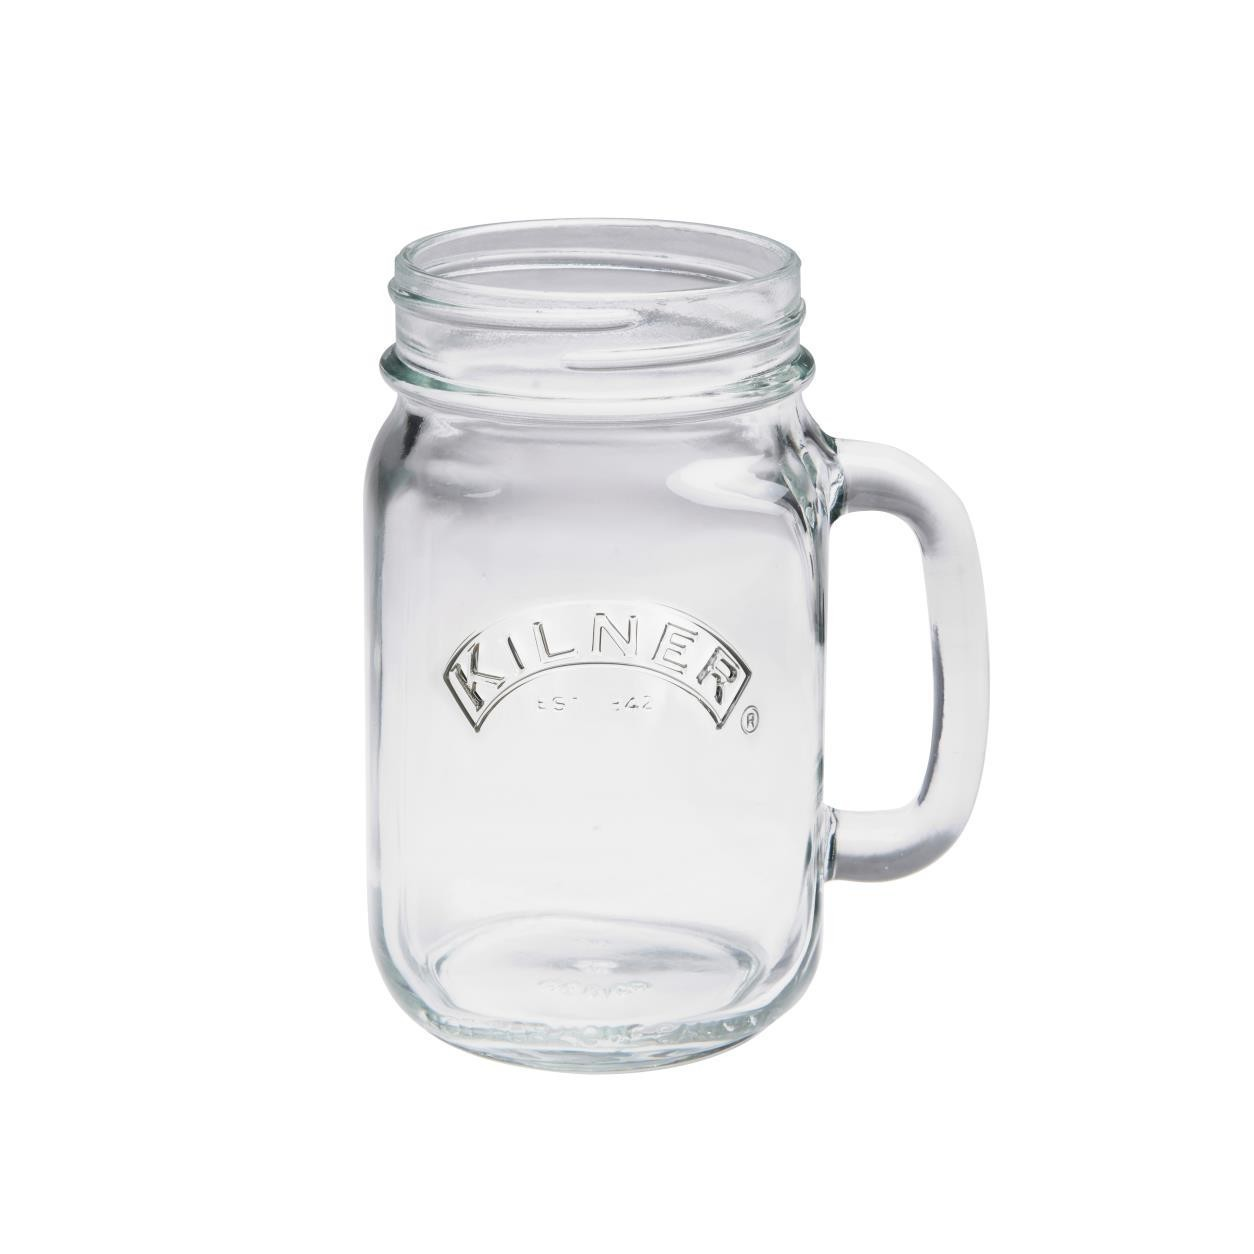 0.5ltr Kilner Clear Handled Drinking Jar